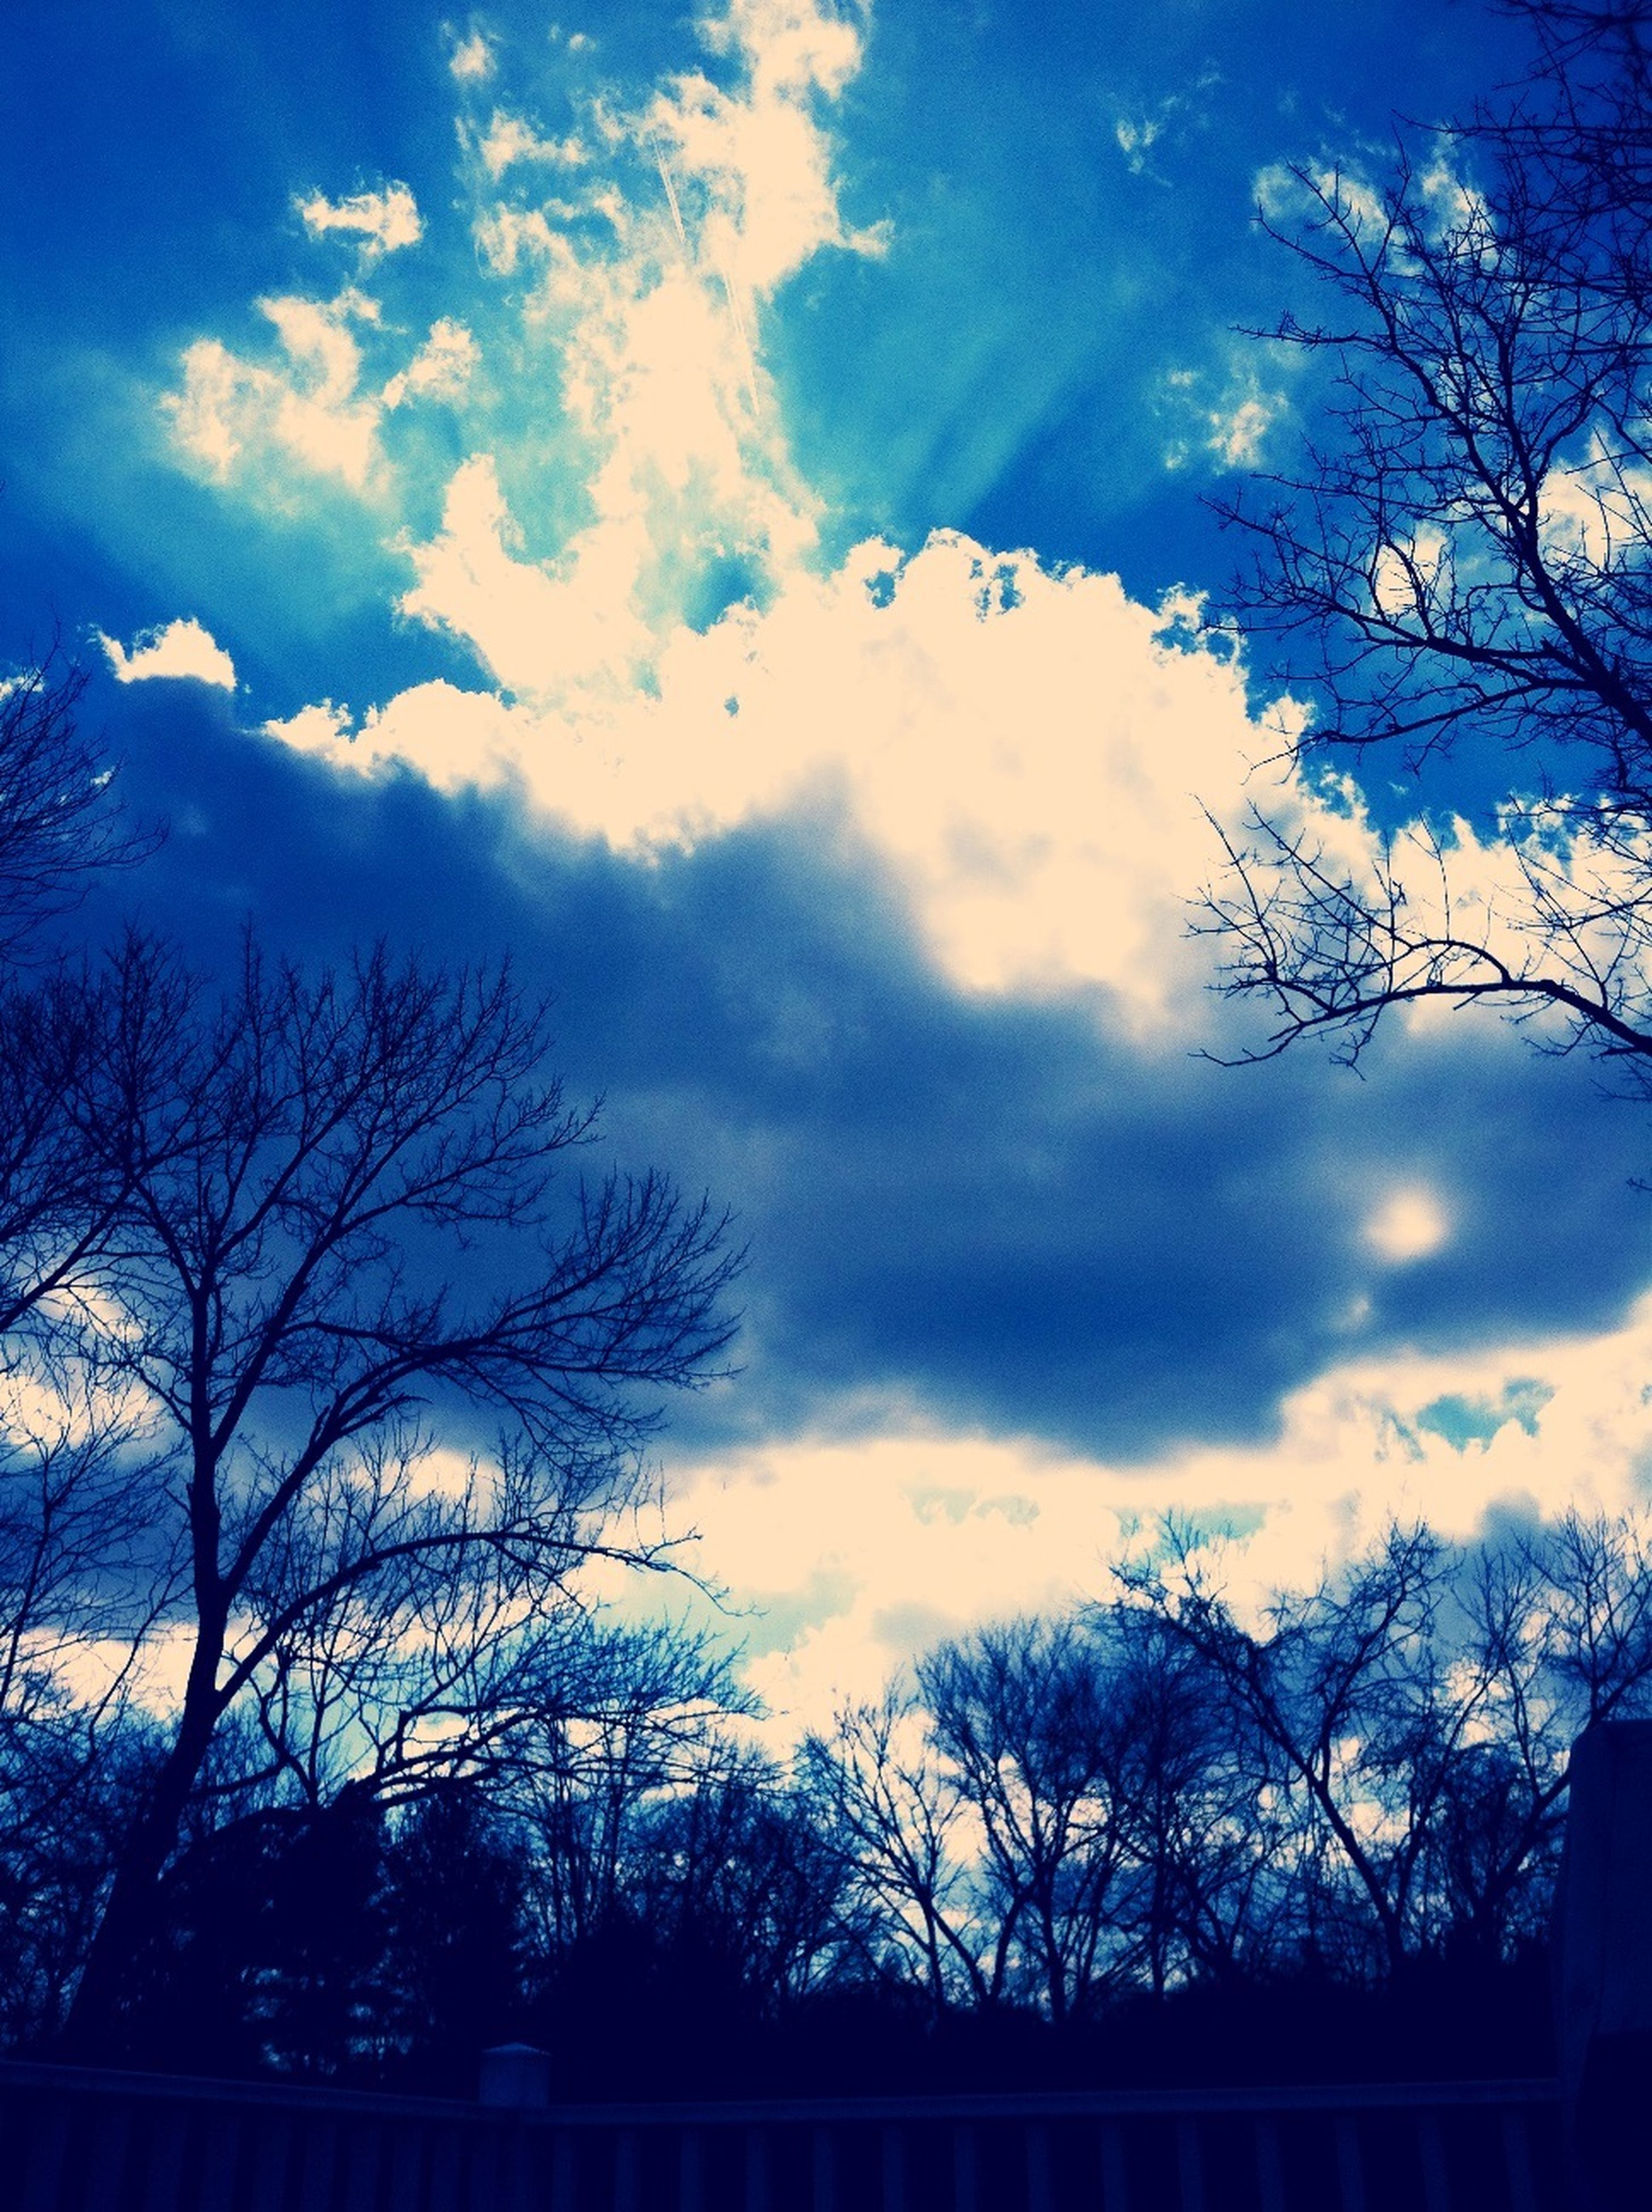 tree, bare tree, silhouette, sky, cloud - sky, tranquility, branch, scenics, beauty in nature, tranquil scene, low angle view, cloud, nature, cloudy, blue, sunset, dusk, outdoors, no people, idyllic